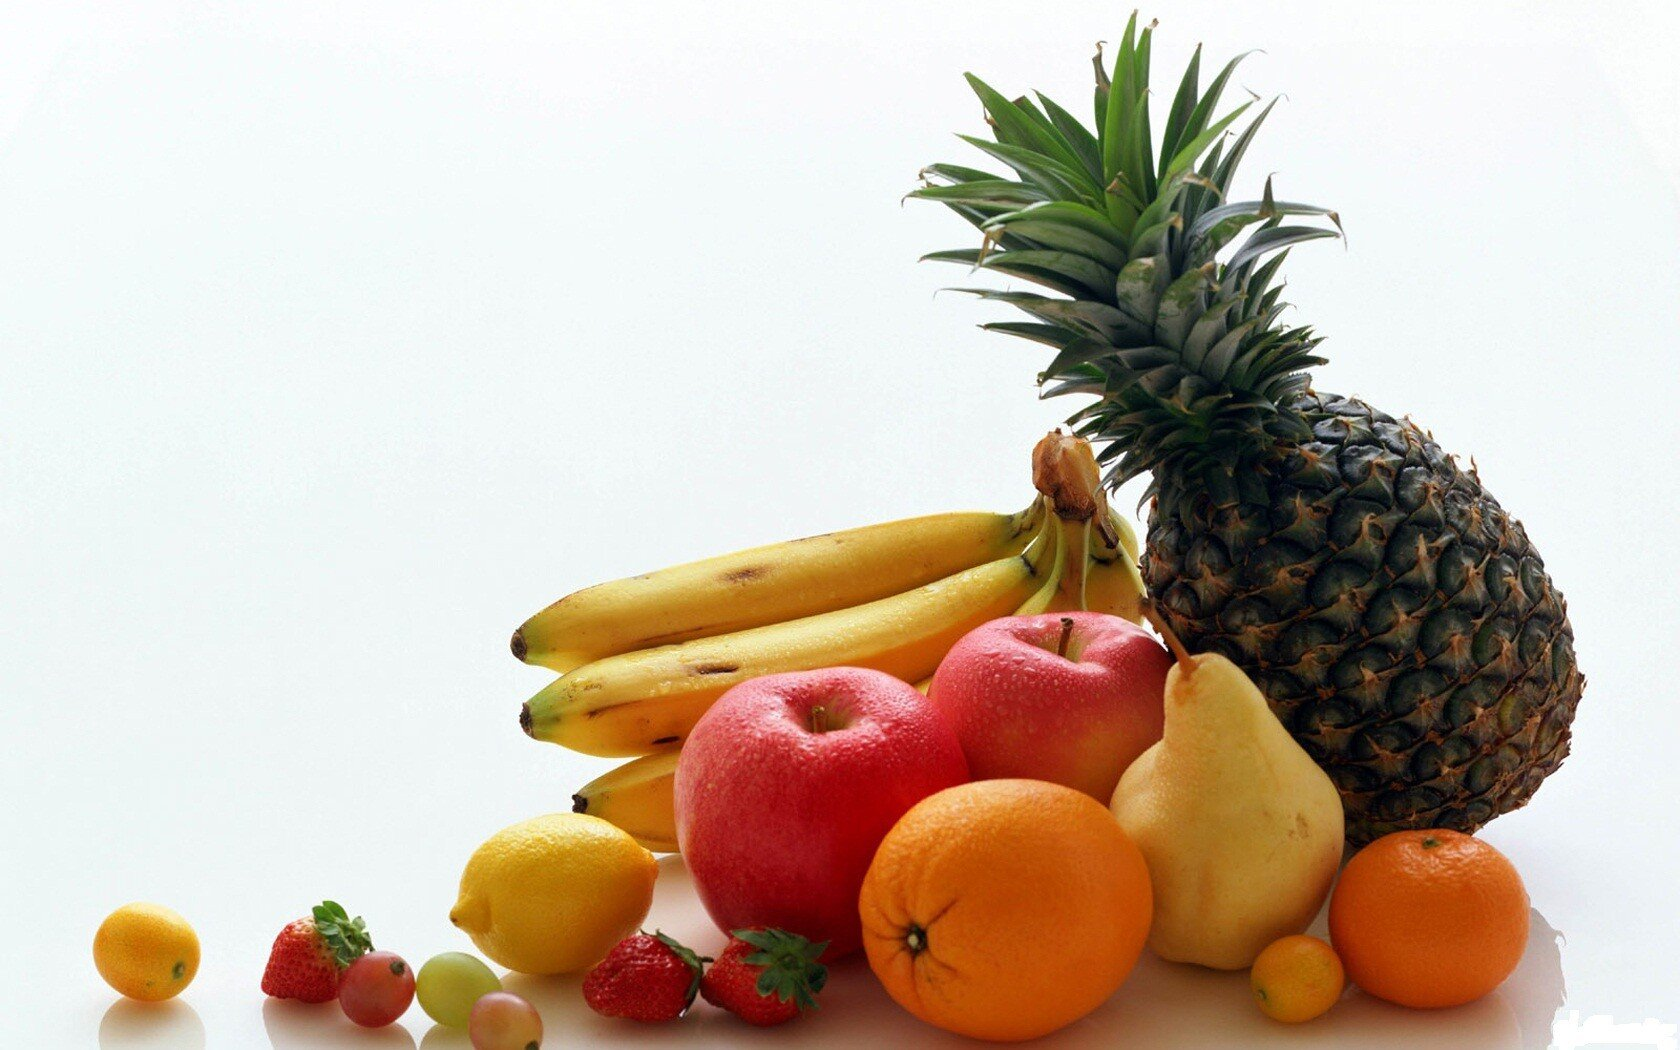 Food___Berries_and_fruits_and_nuts_Still_life_of_fruit_041449_.jpg